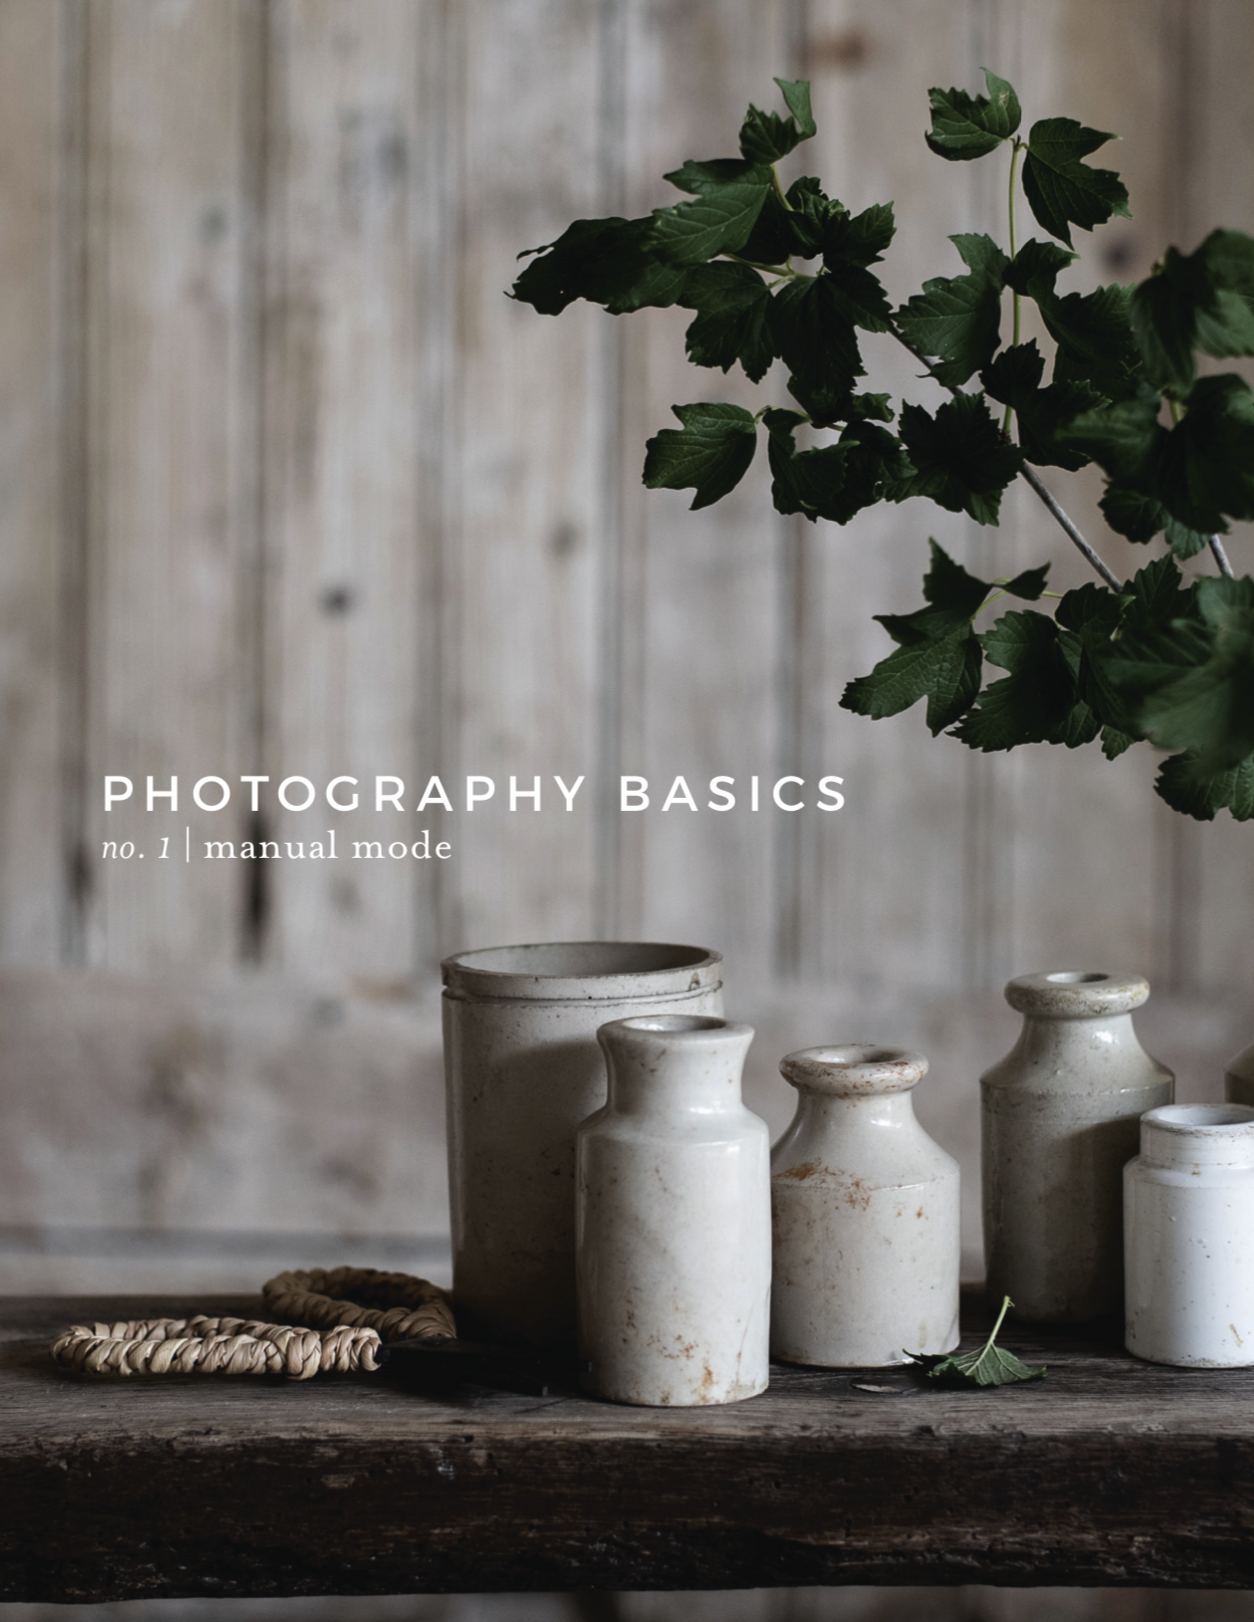 Photography basics | master manual mode - Whether you are interested in learning photography for your small business, blog, or just for fun, our e-book breaks down manual mode into easily digestible chunks. We will cover aperture, shutter speed, and ISO in this course so that you can take control of your camera with confidence!